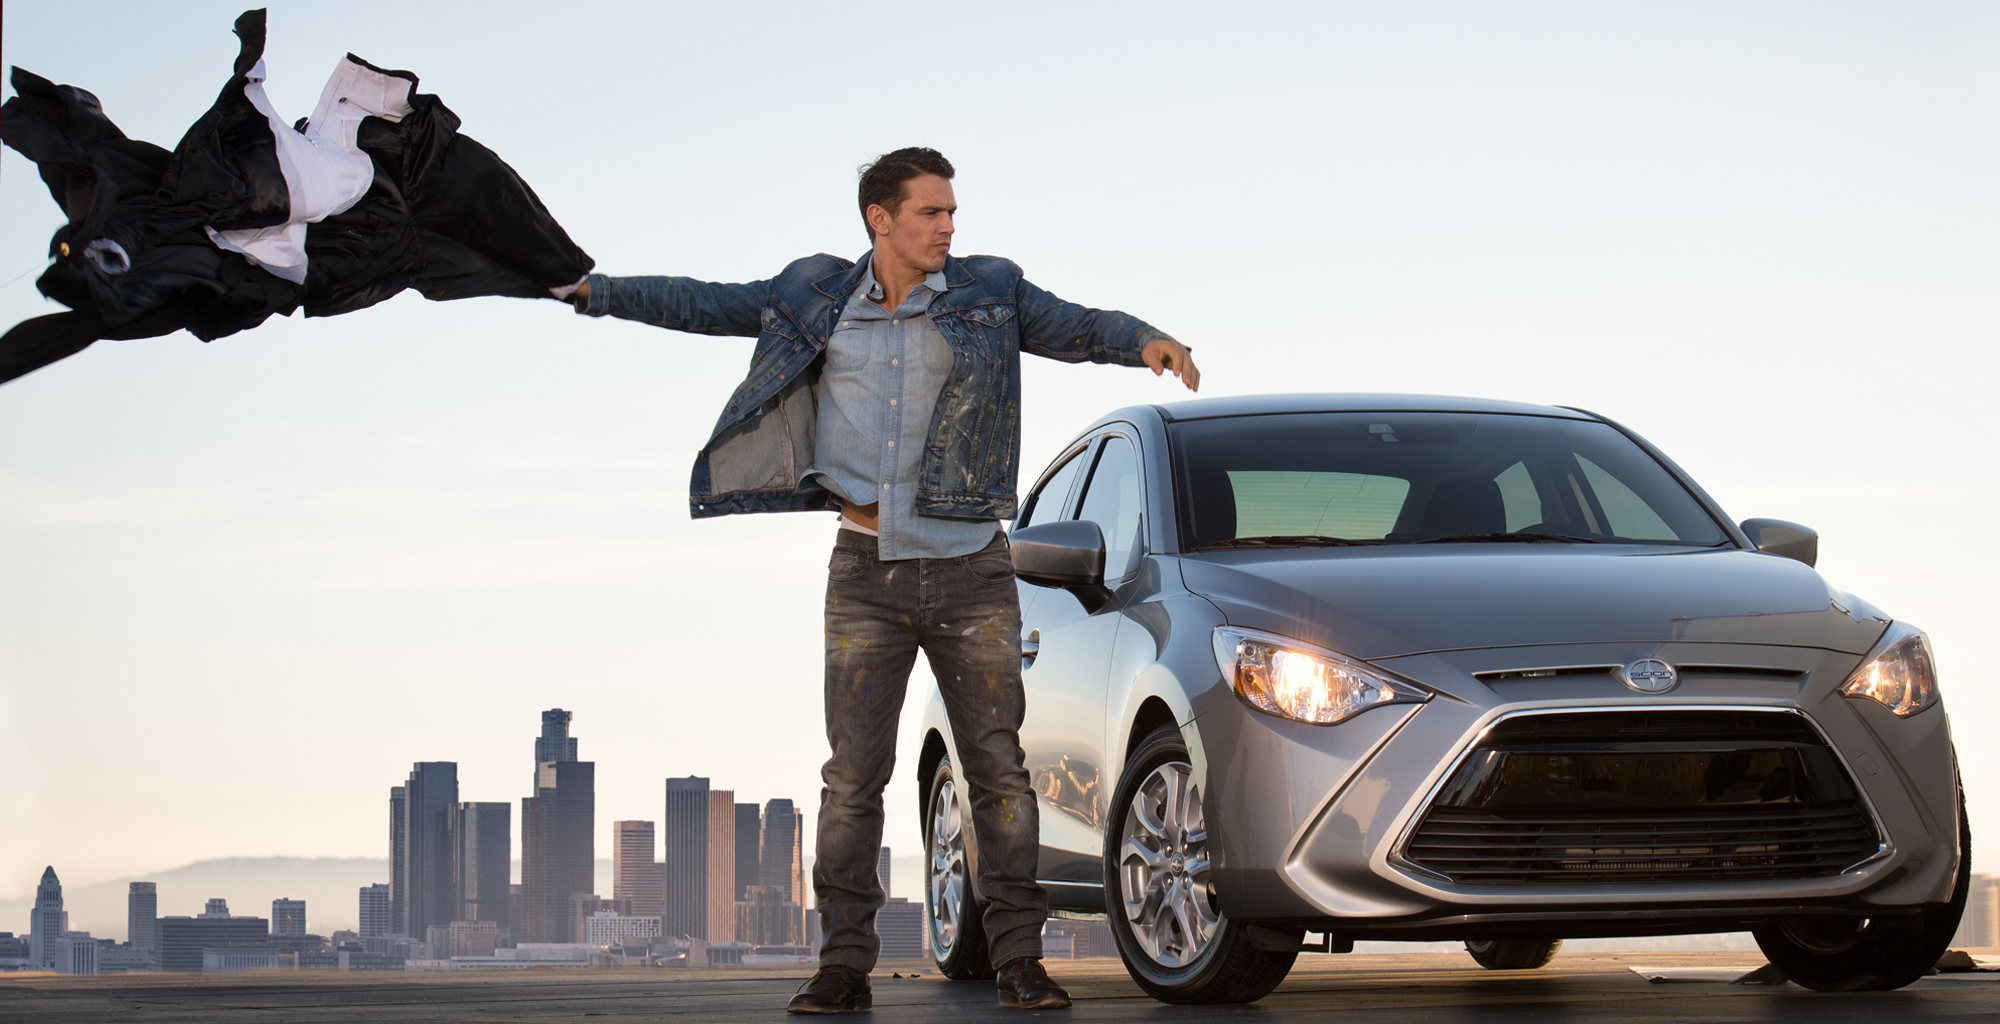 James Franco in a commercial for Scion IA/IM